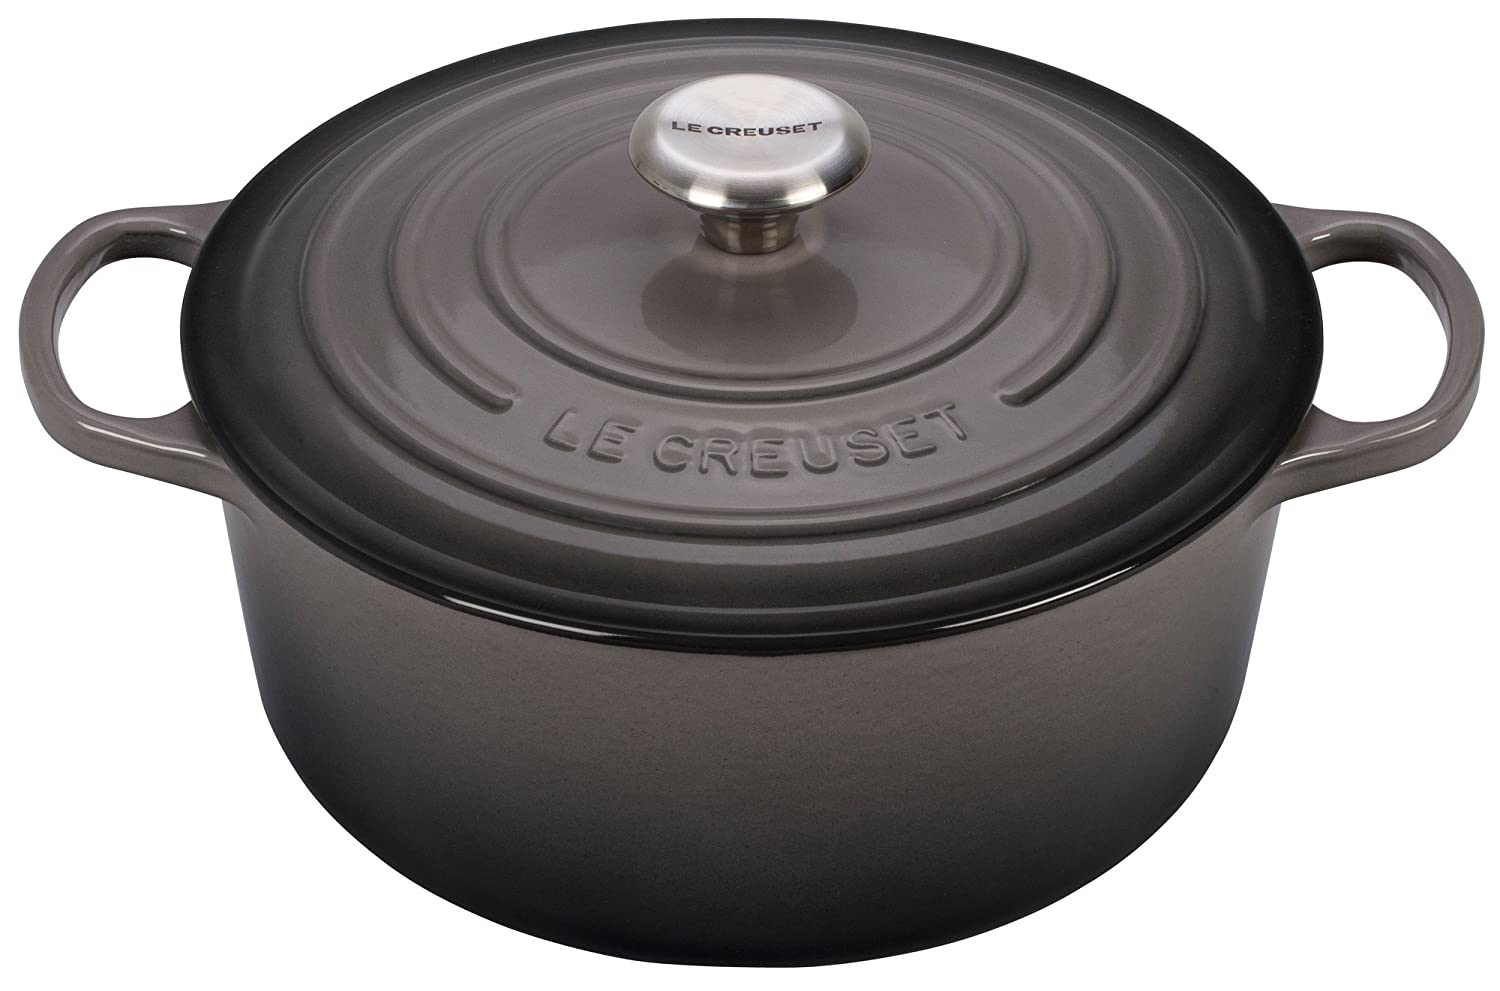 Le Creuset Signature Enameled Cast-Iron 9-Quart Round French (Dutch) Oven, Oyster